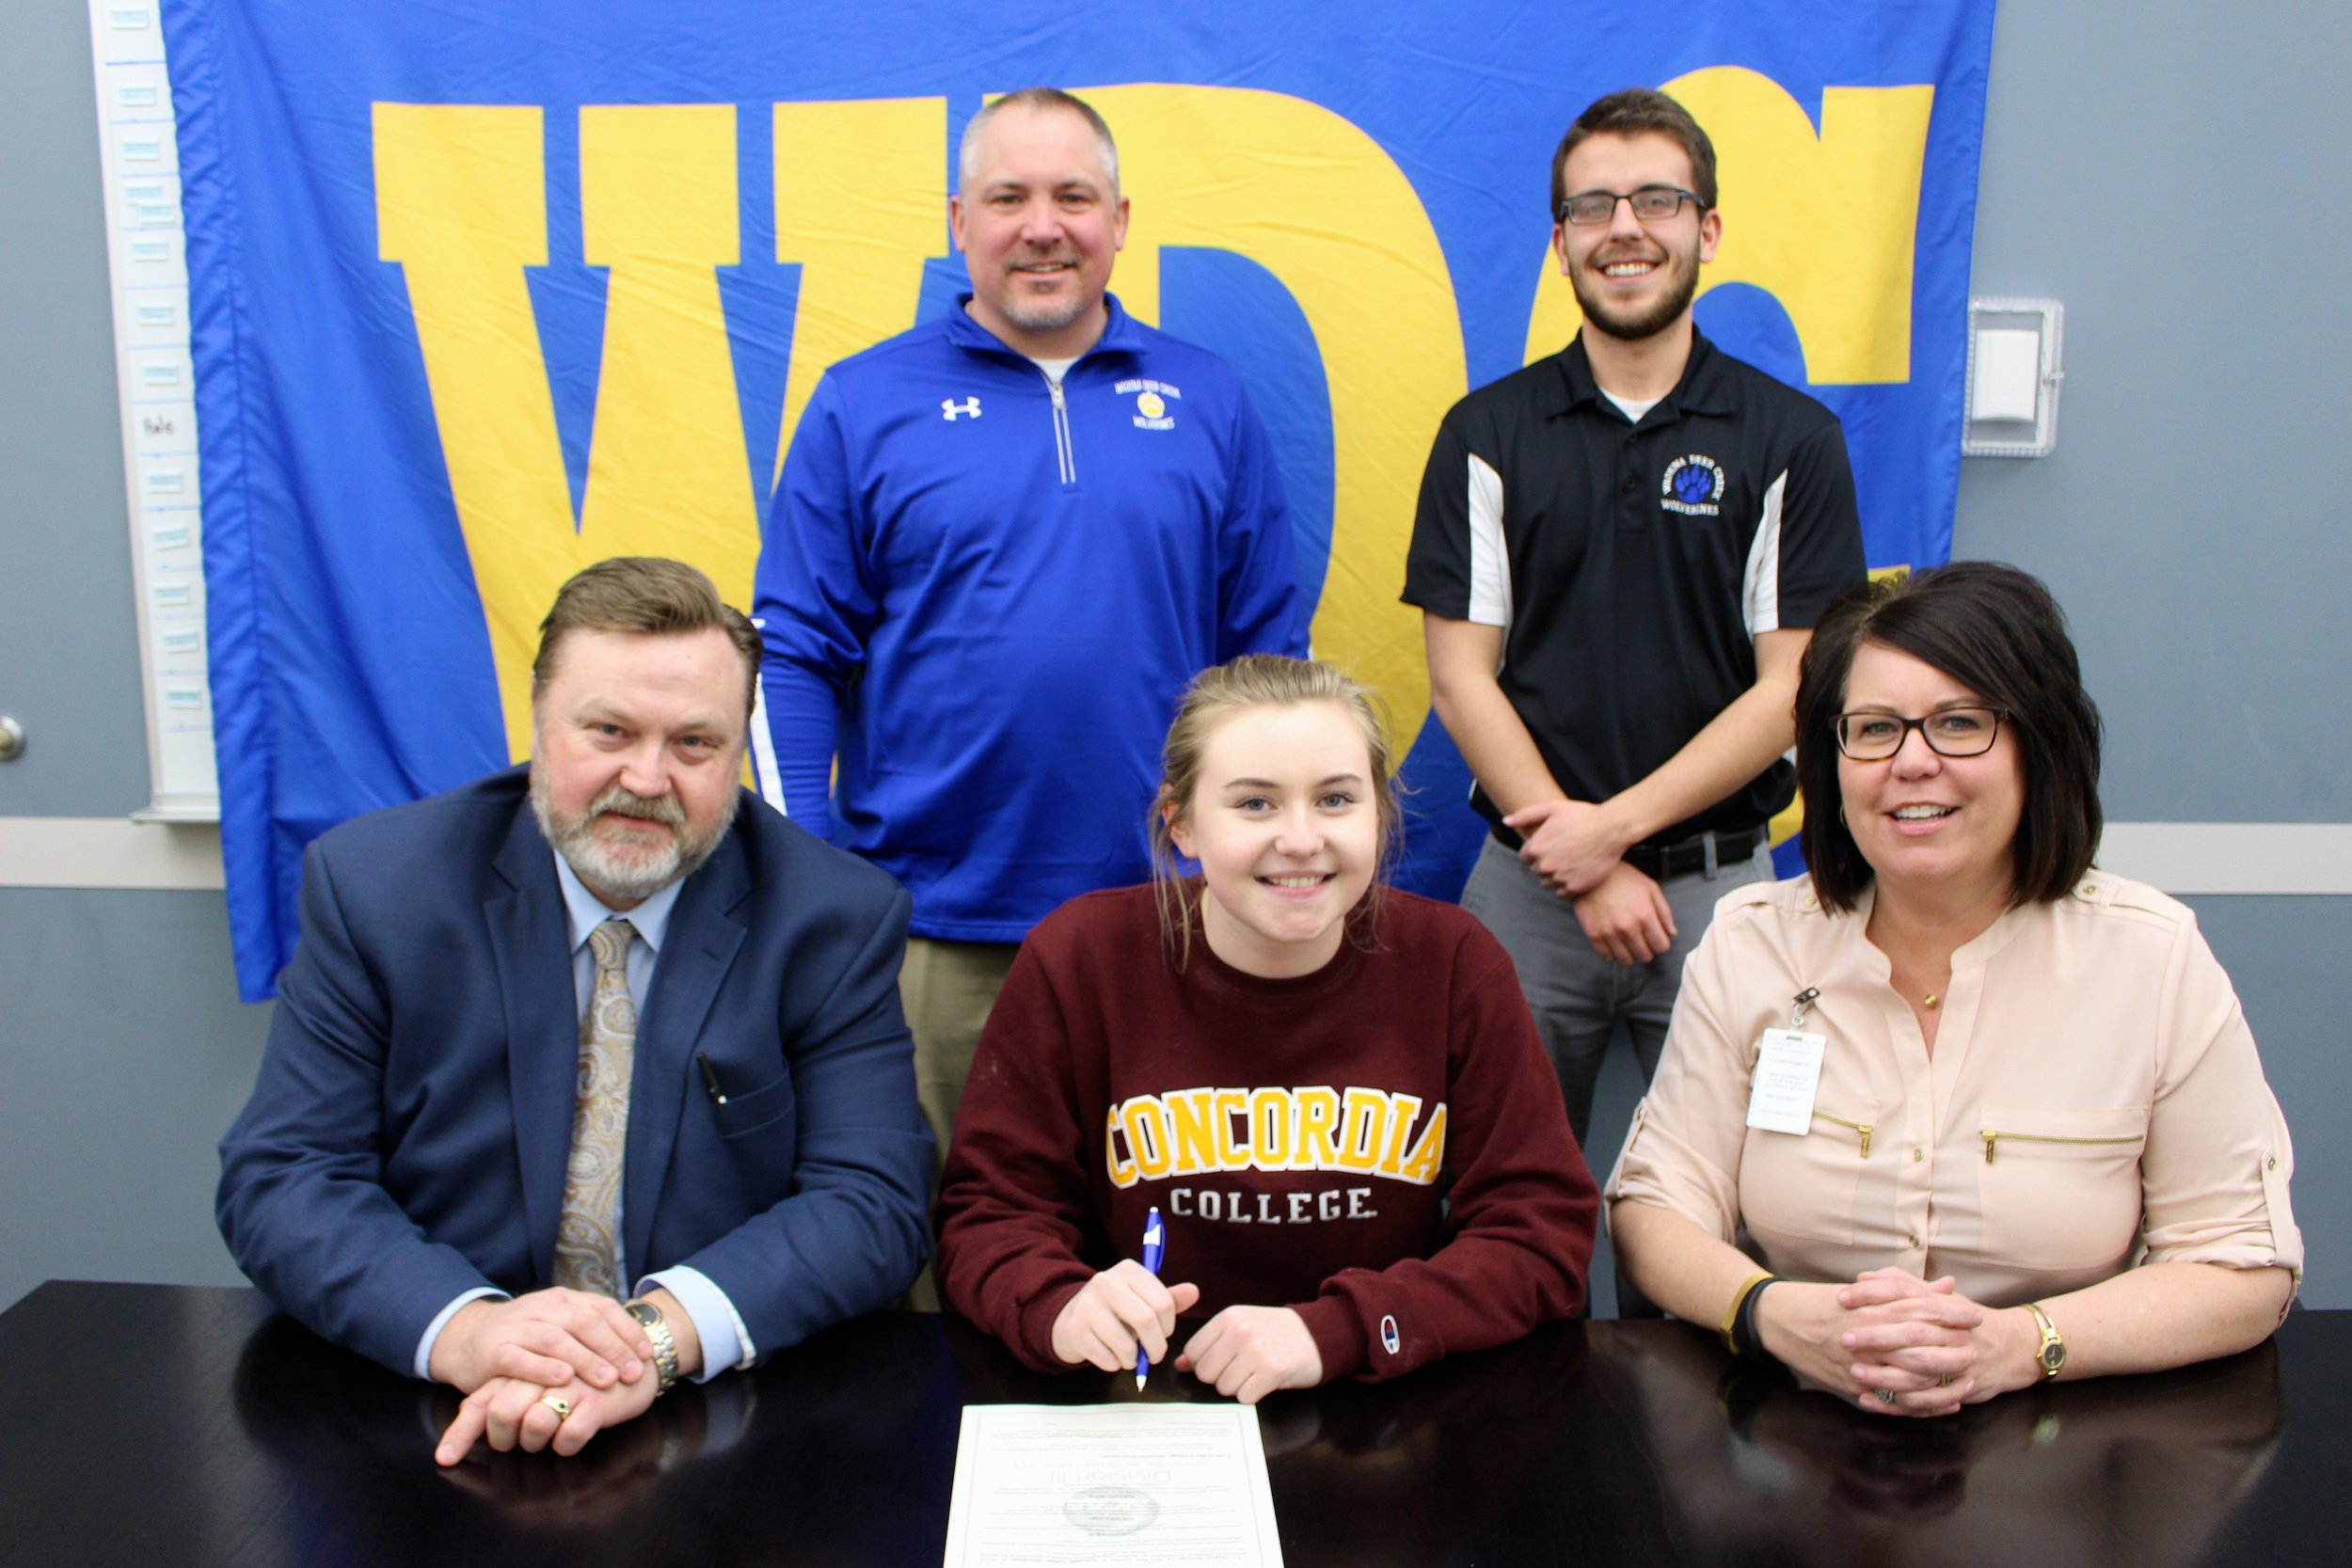 At the signing this week, Abby Westrum (center) is surrounded by her parents, Lee and Jennifer Westrum, as well as Norm Gallant, WDC Activities Director (left) and Jordan Cresap, WDC Girls' Tennis Coach. (Photos by Dana Cantleberry, WDC Schools)